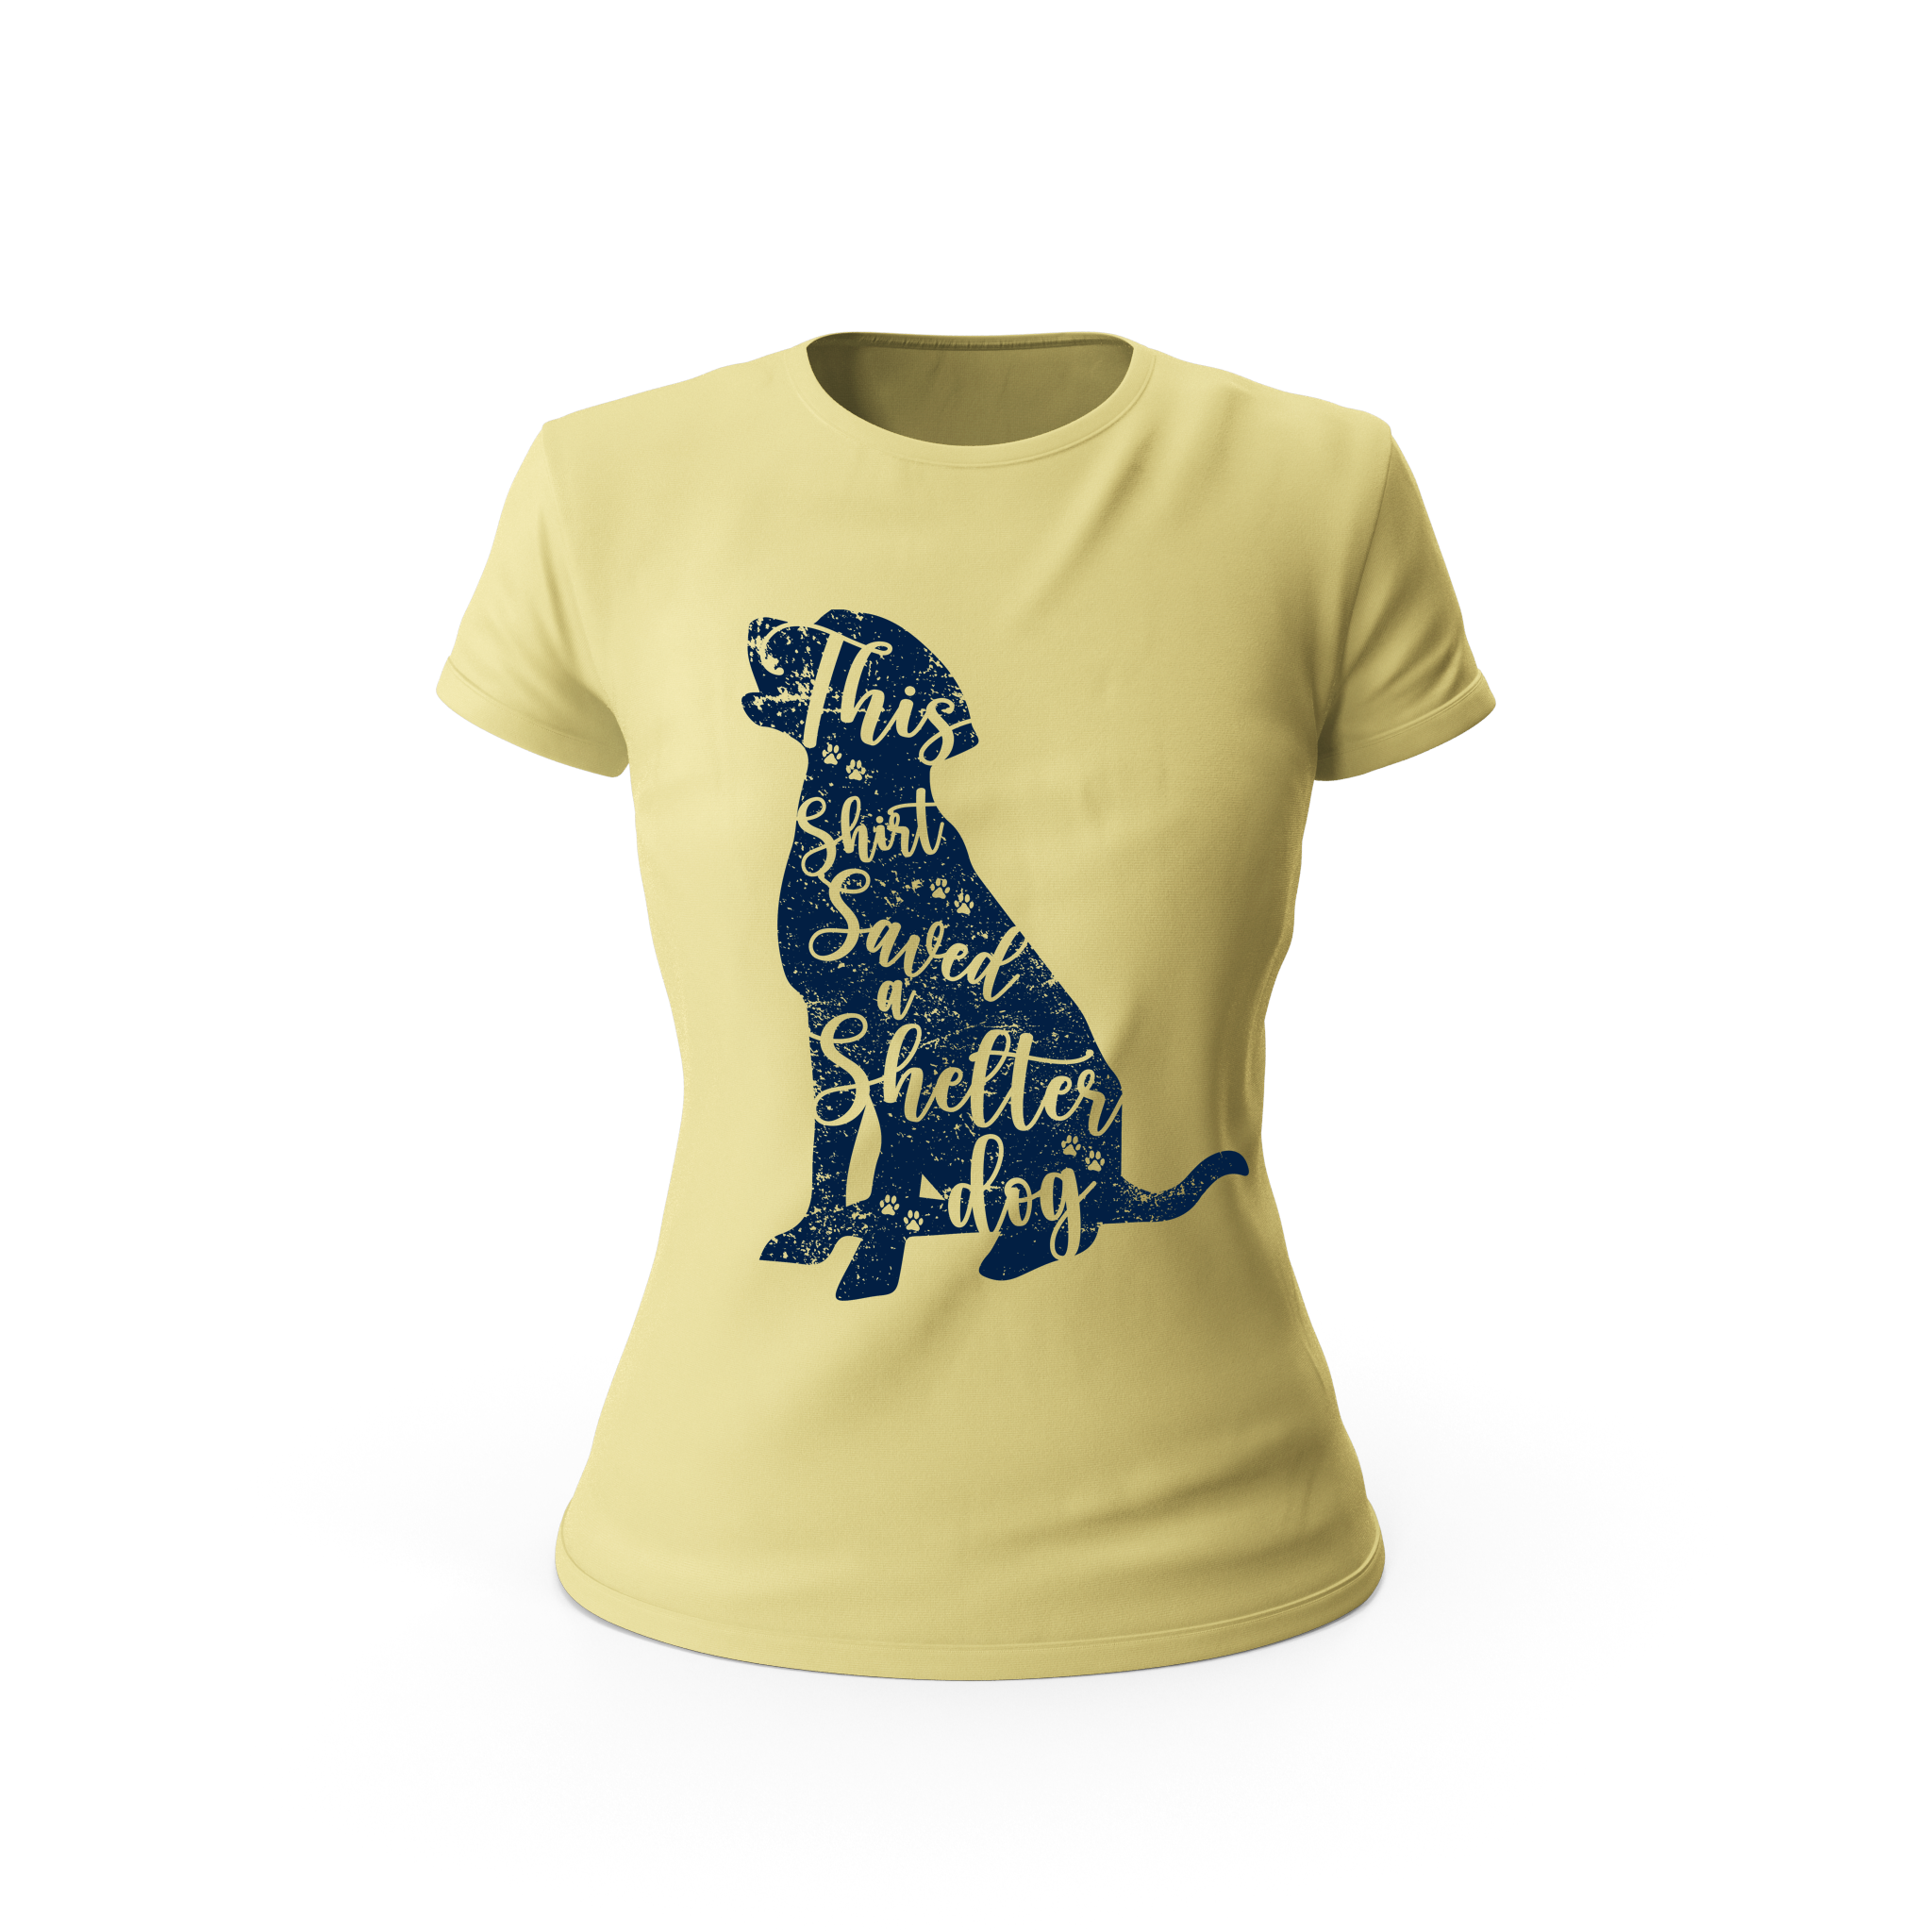 Saved a Shelter Dog Ladies Shirt (Yellow)